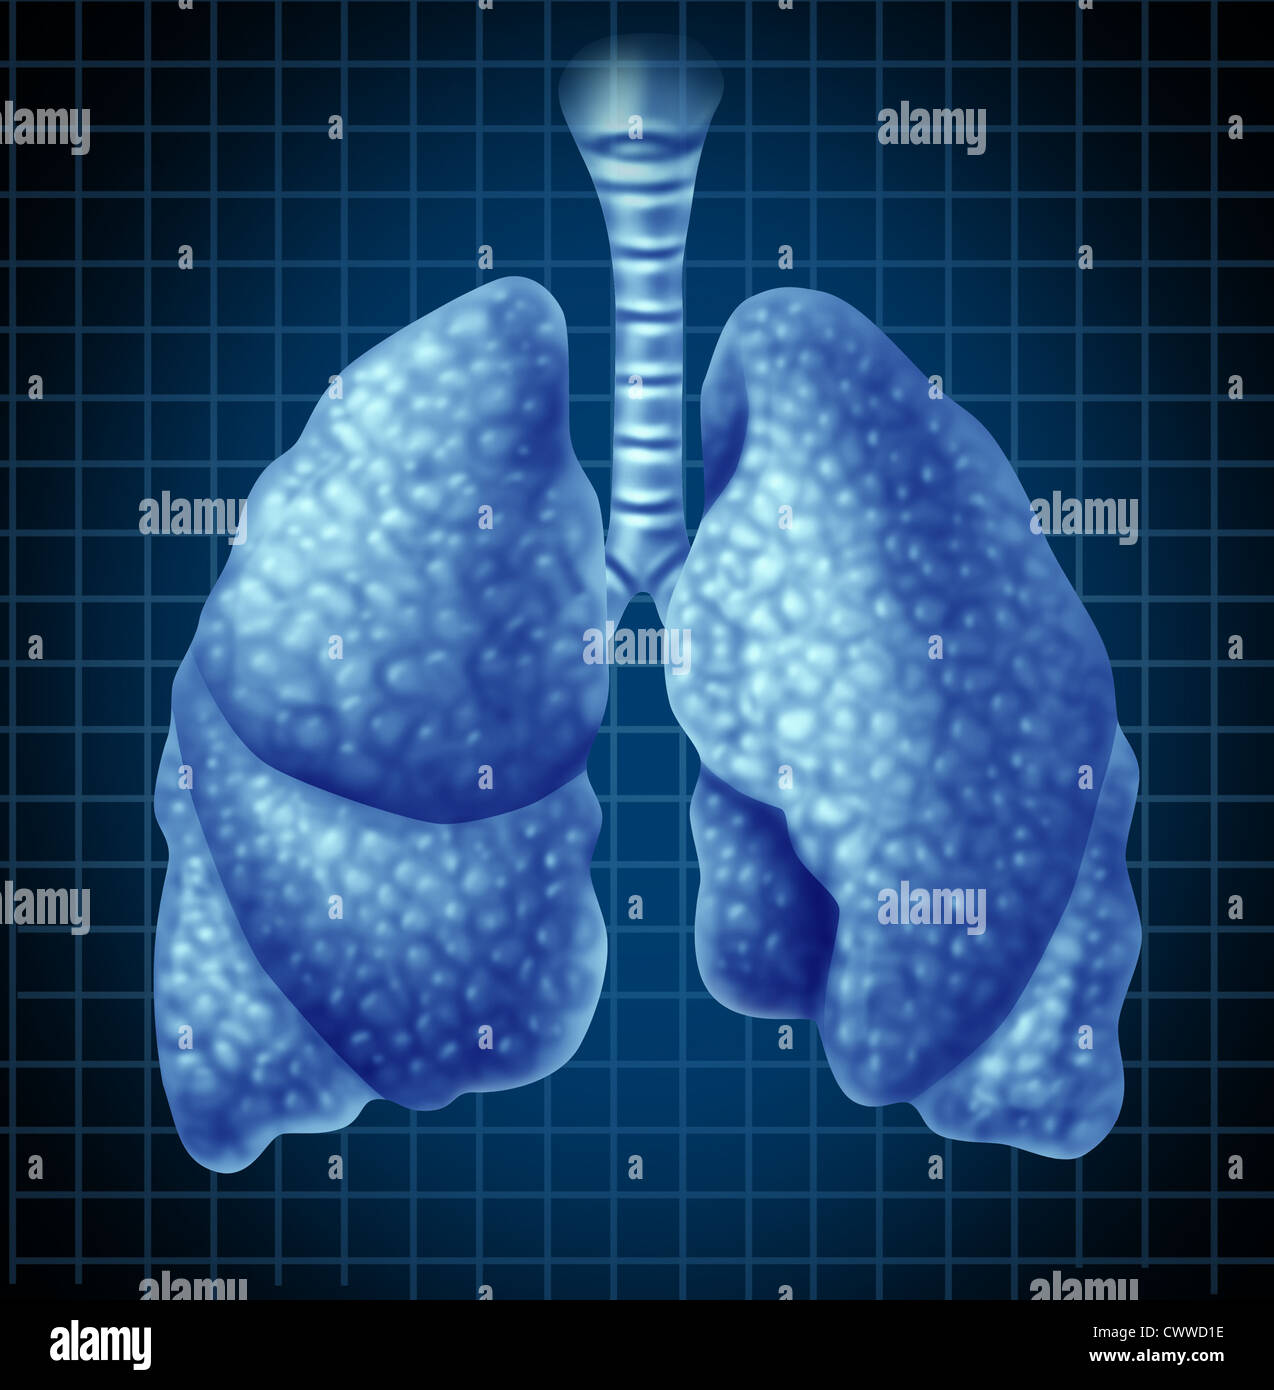 Human lungs organ as a medical health symbol representing the respiratory tract and breathing system showing the - Stock Image